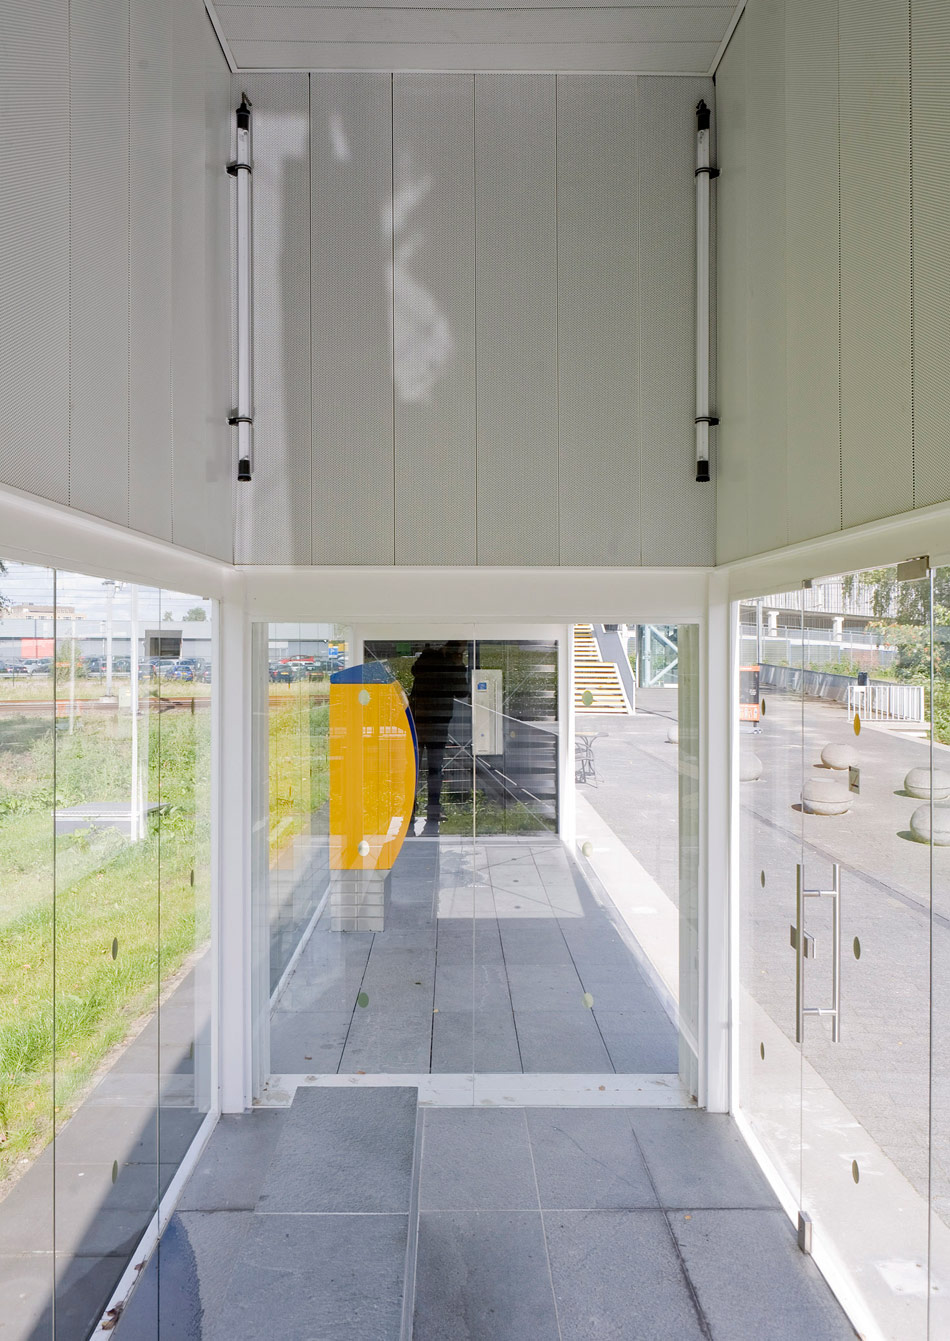 the_tree_mag-barneveld-noord-station-by-nl-architects-90.jpg